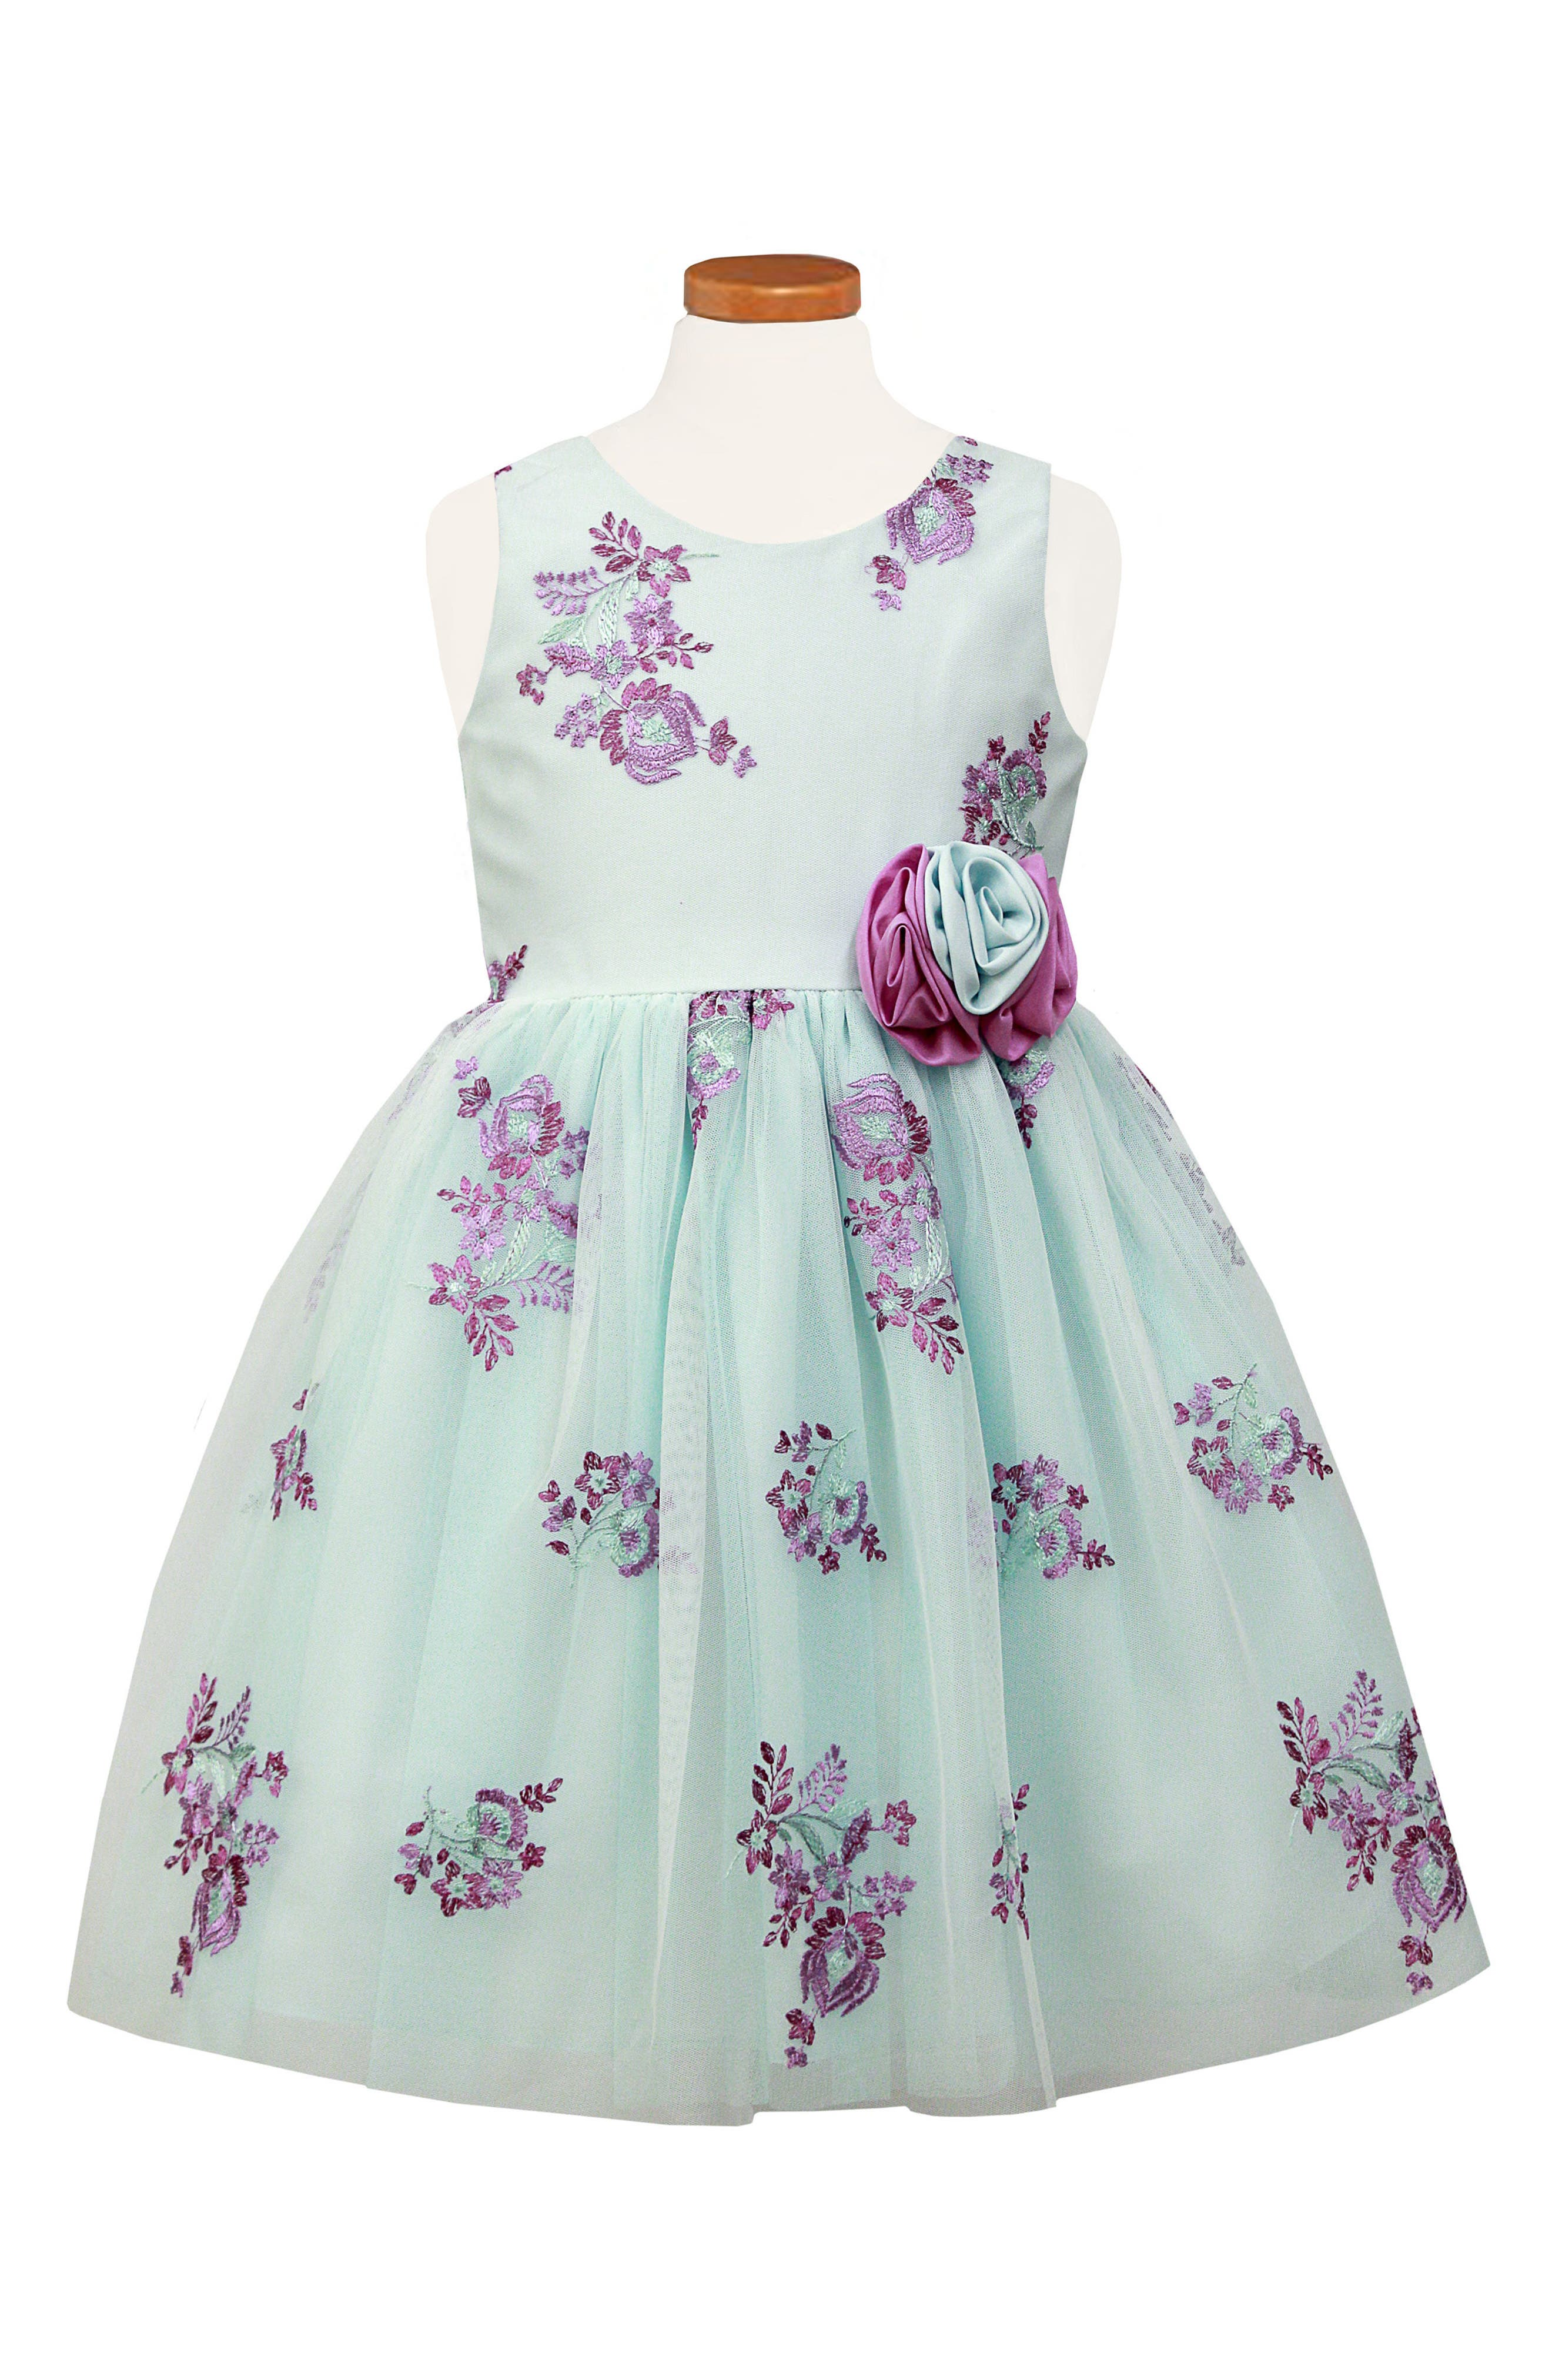 Embroidered Floral Tulle Dress,                             Main thumbnail 1, color,                             Aqua